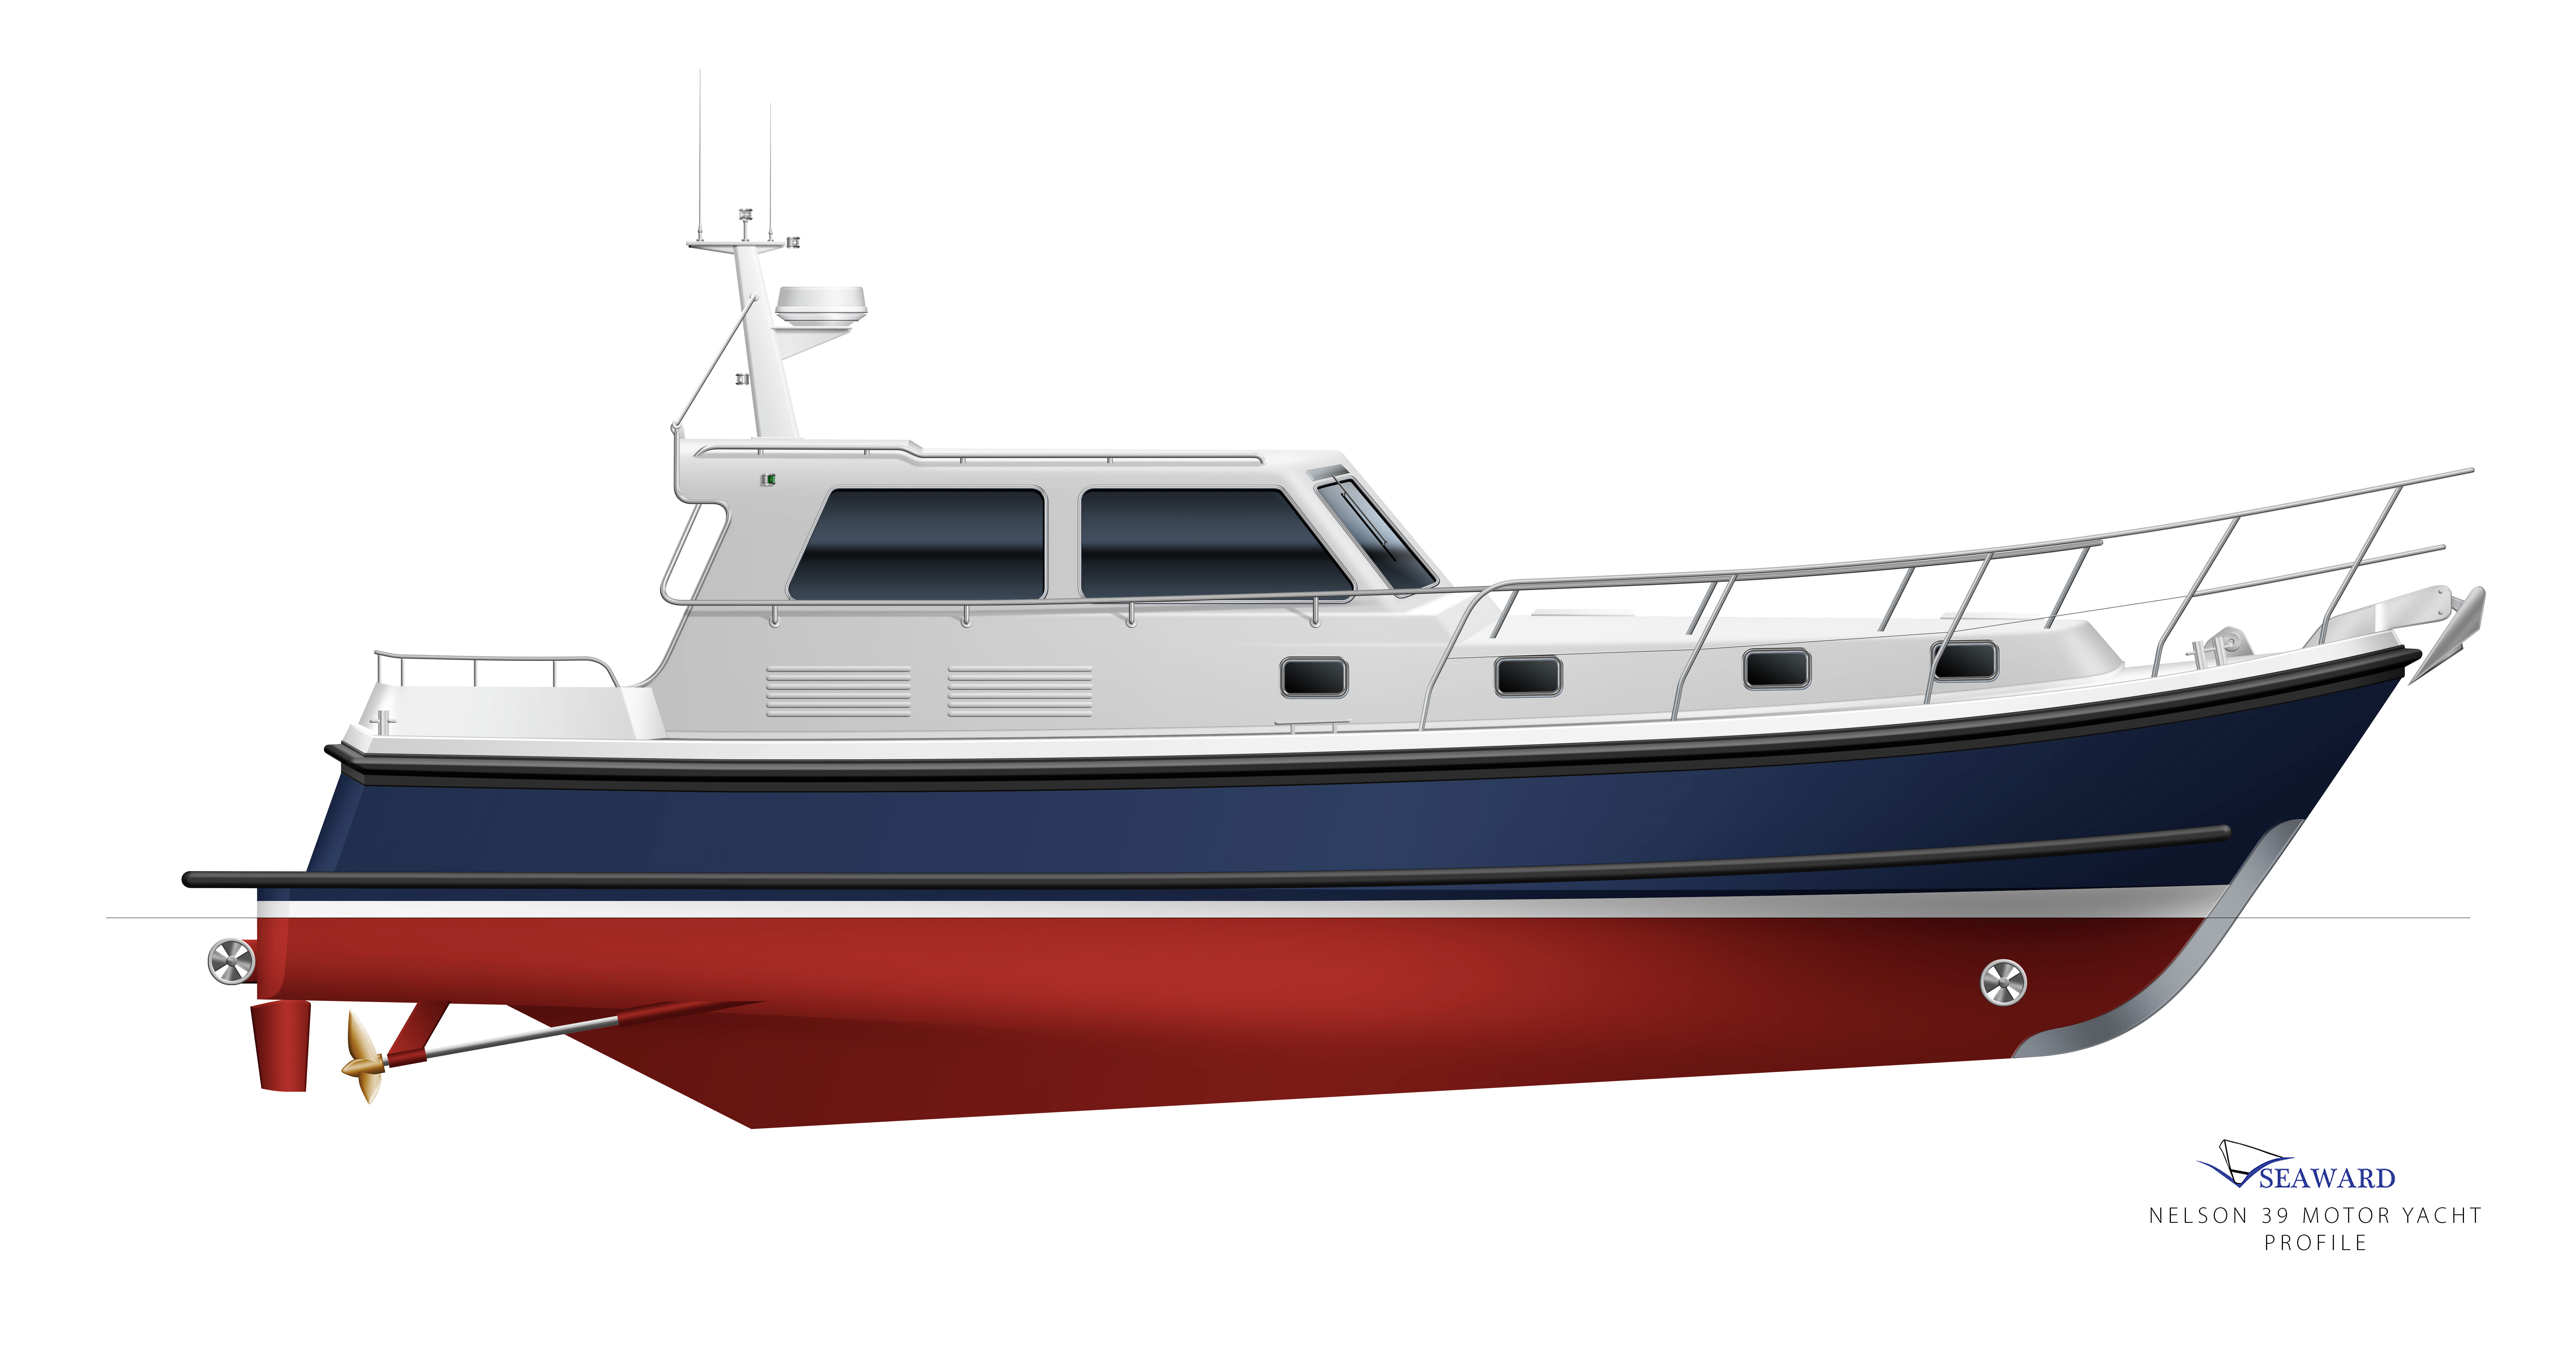 Exciting Seaward model updates